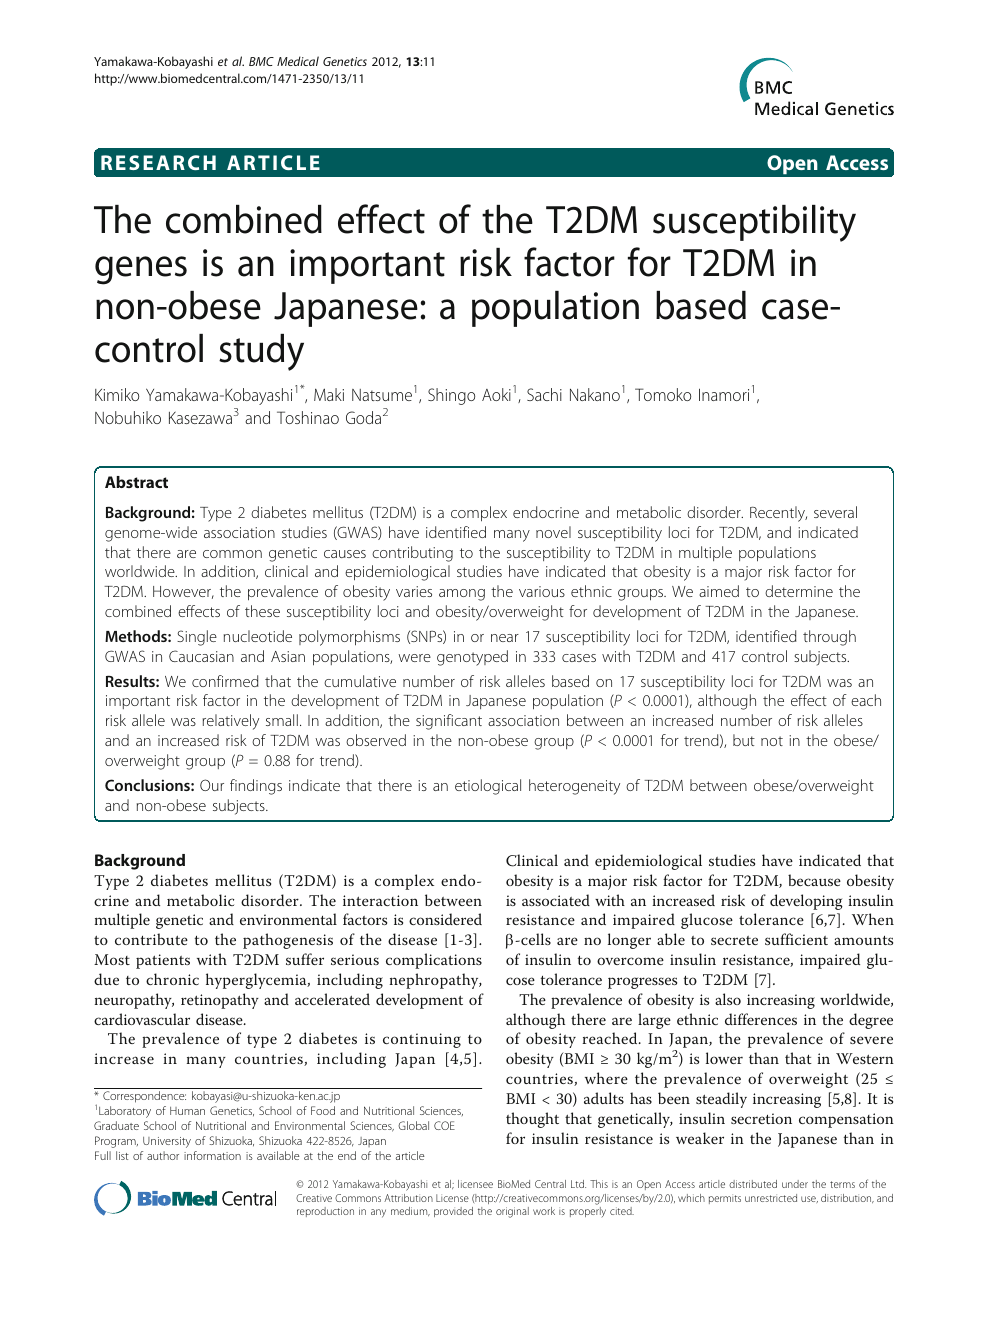 The combined effect of the T2DM susceptibility genes is an